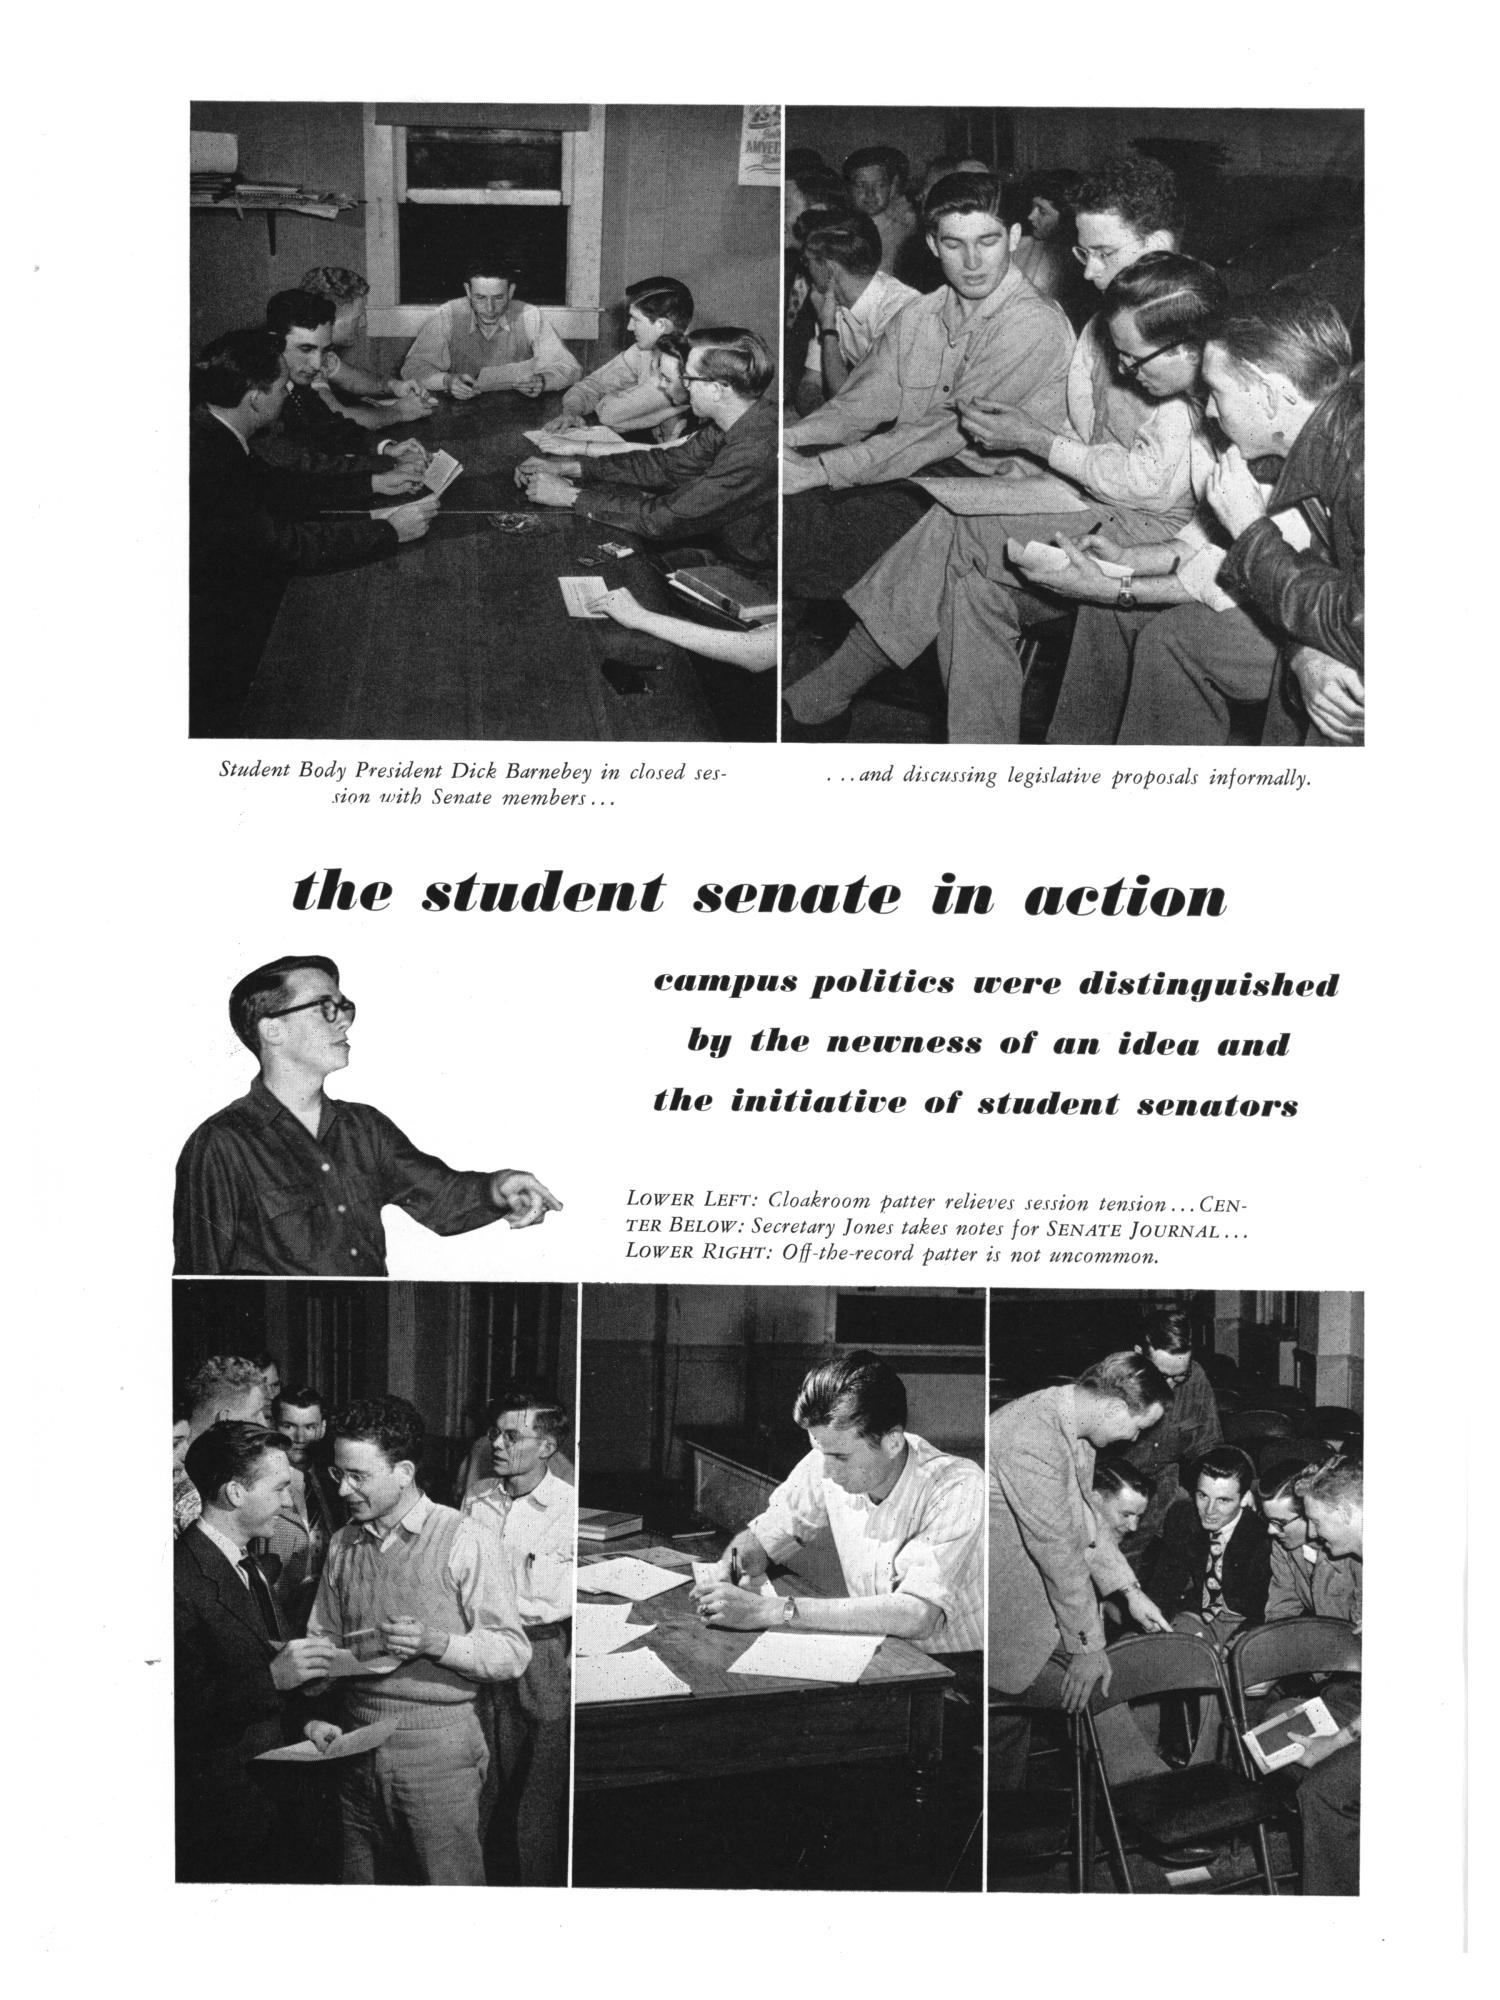 "White page with two black and white photos at top of people sitting with notepads. At center is text reading ""The Student Senate in Action"" and a cutout black and white photo of a man pointing. At bottom are three black and white photos of people talking in different settings."